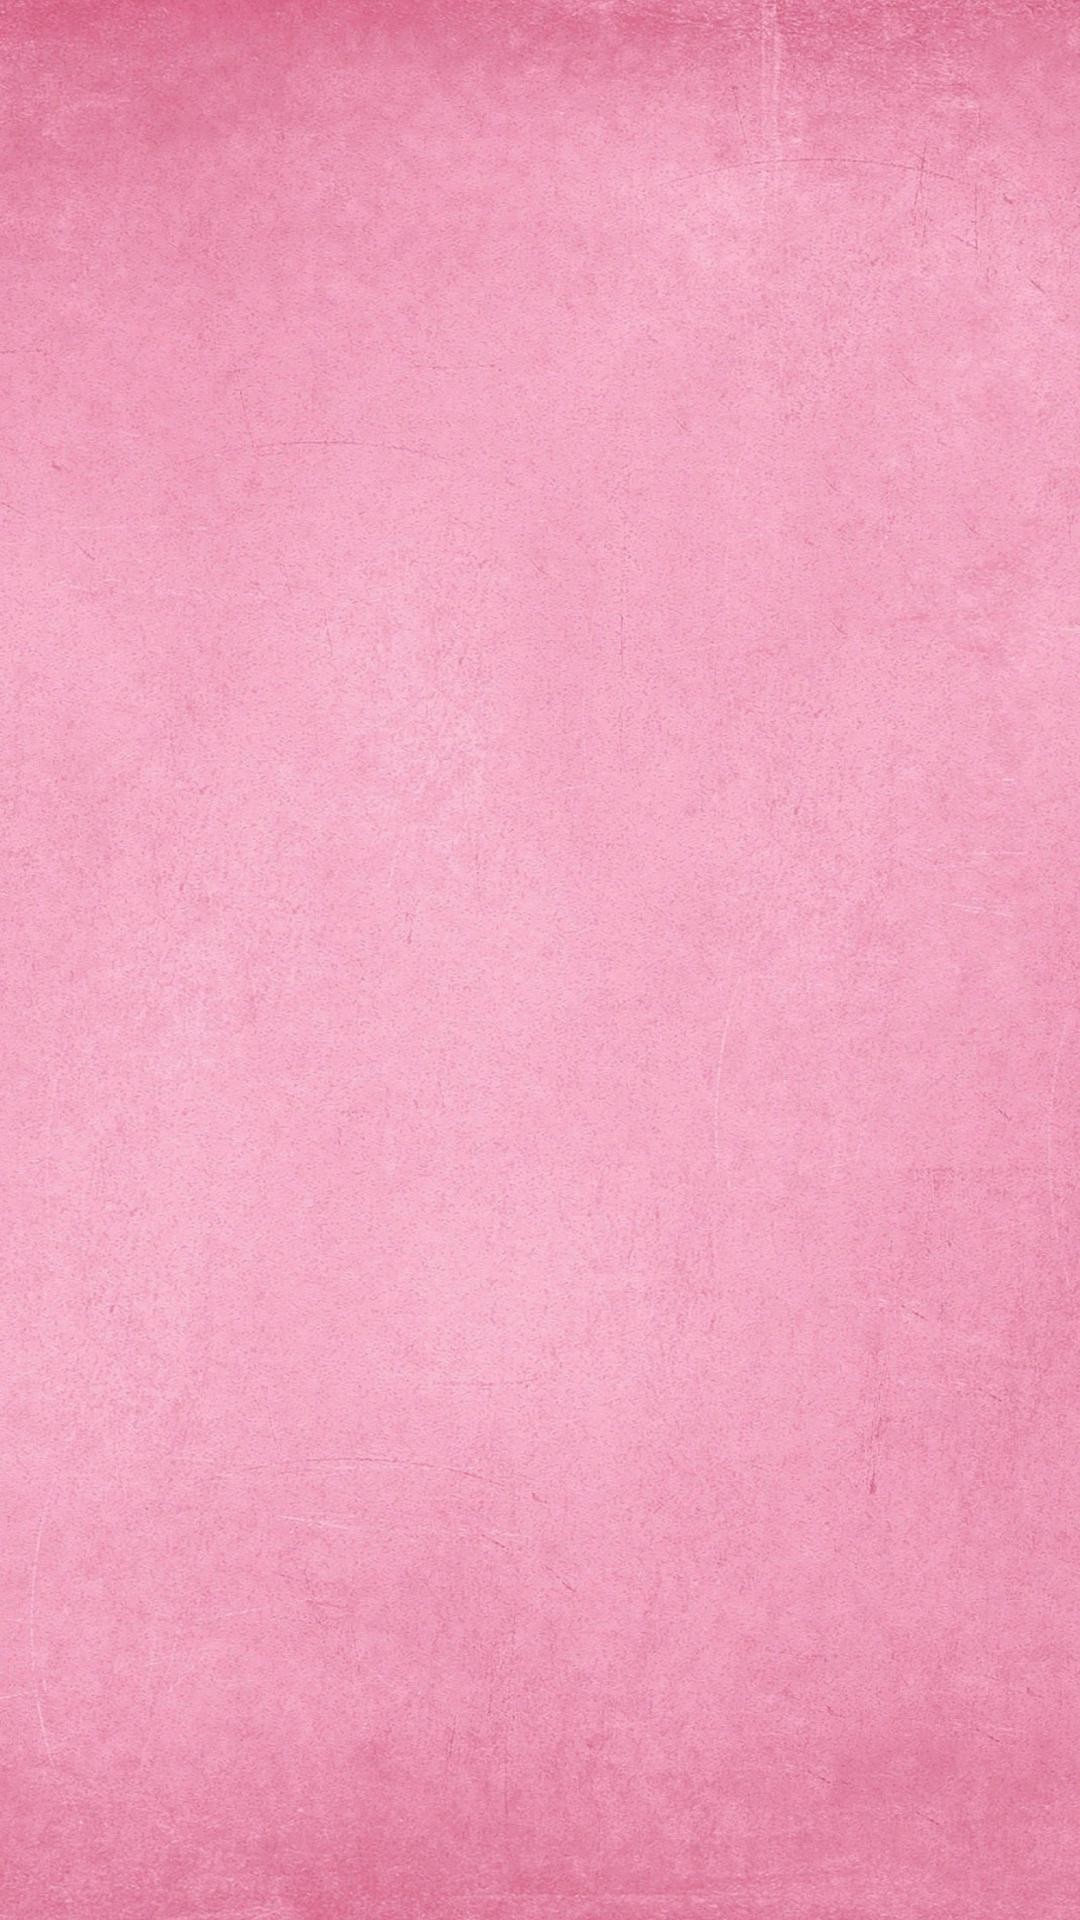 wallpaper.wiki-HD-Cool-Pink-Iphone-Background-PIC-